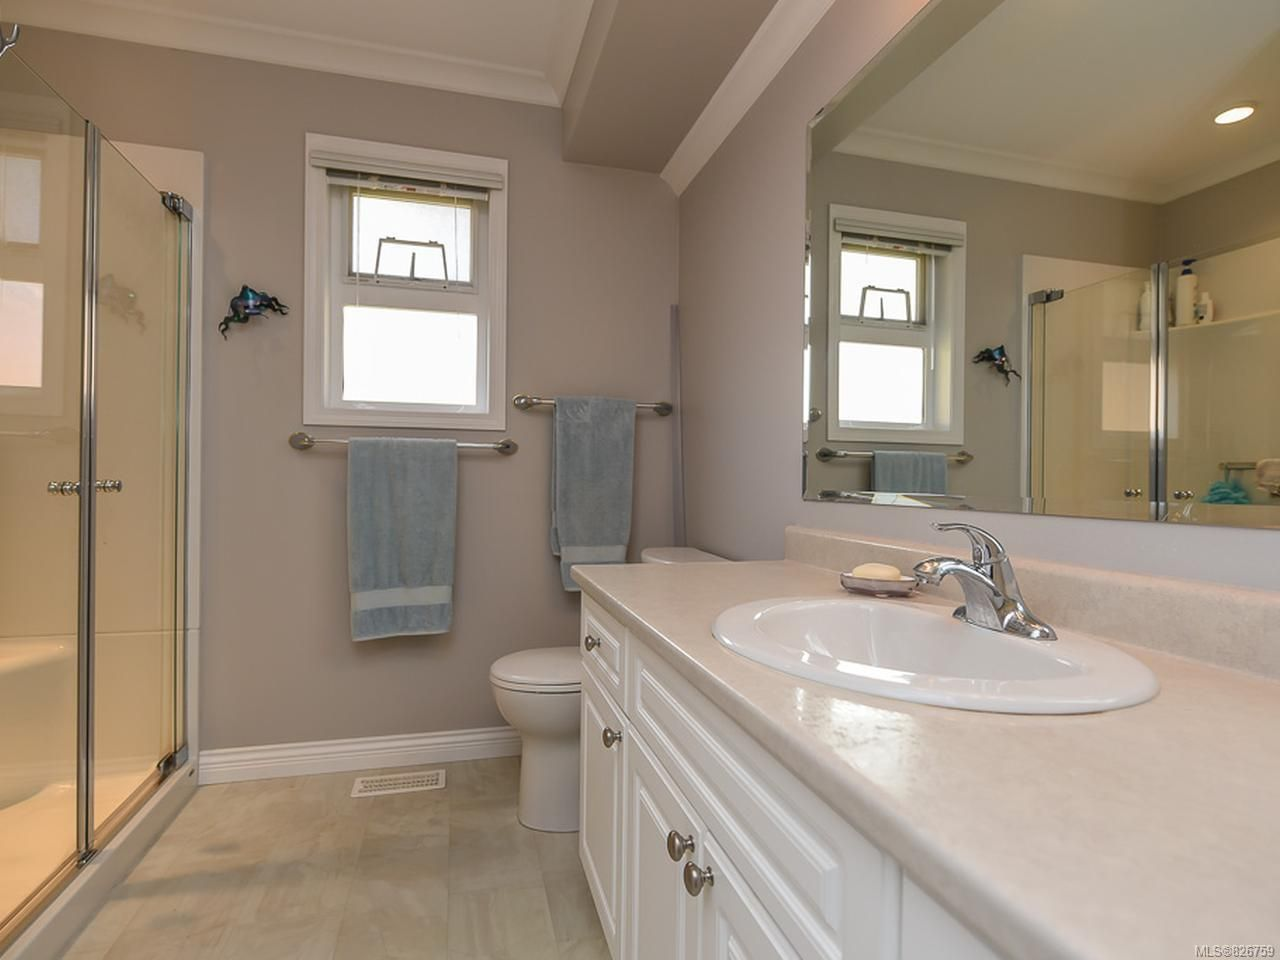 Photo 15: Photos: 2165 Stirling Cres in COURTENAY: CV Courtenay East House for sale (Comox Valley)  : MLS®# 826759